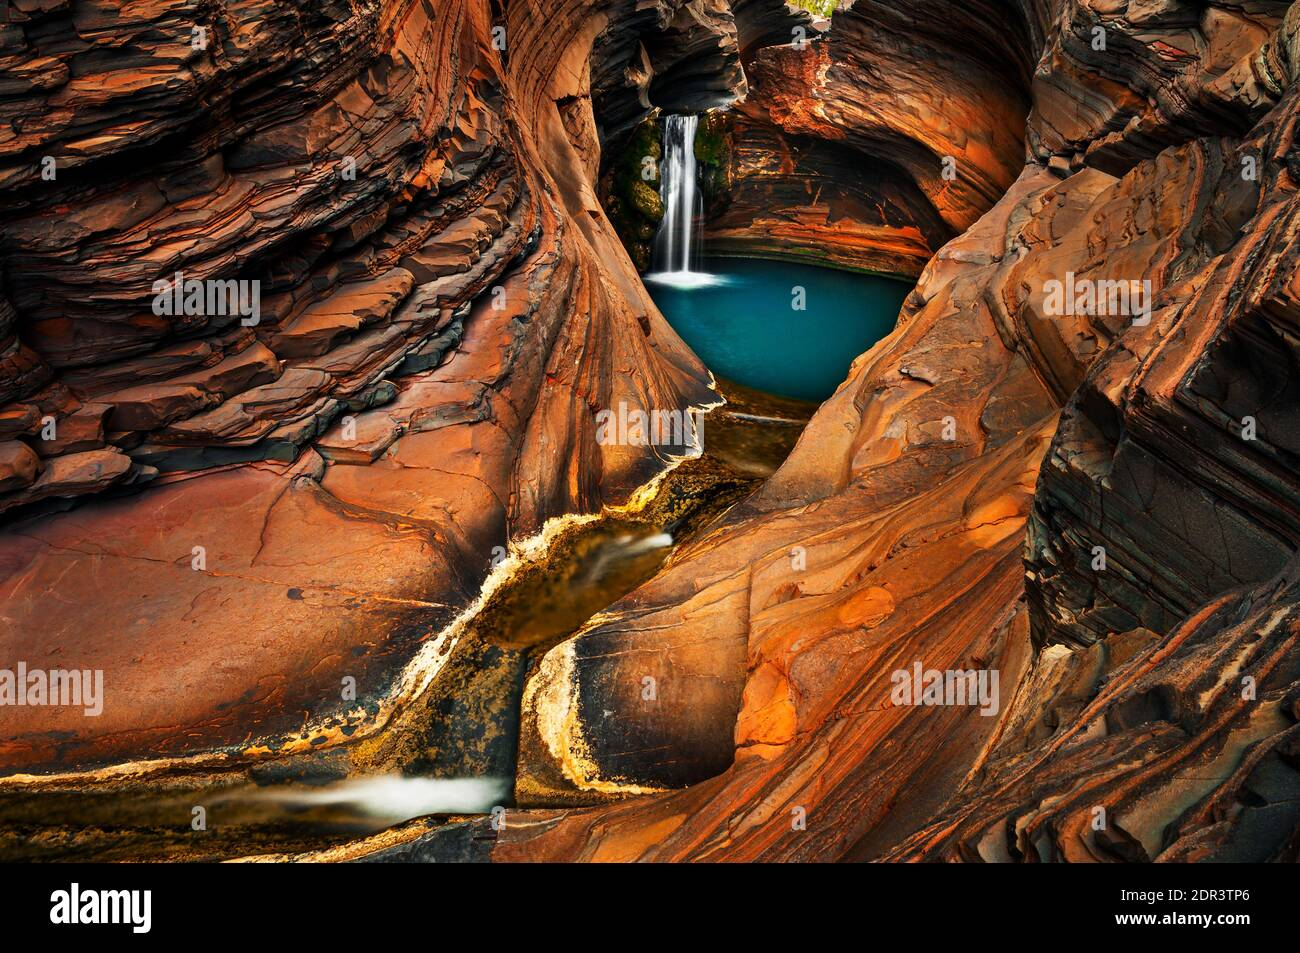 Outstanding Spa Pool in Karijini National Park. Stock Photo